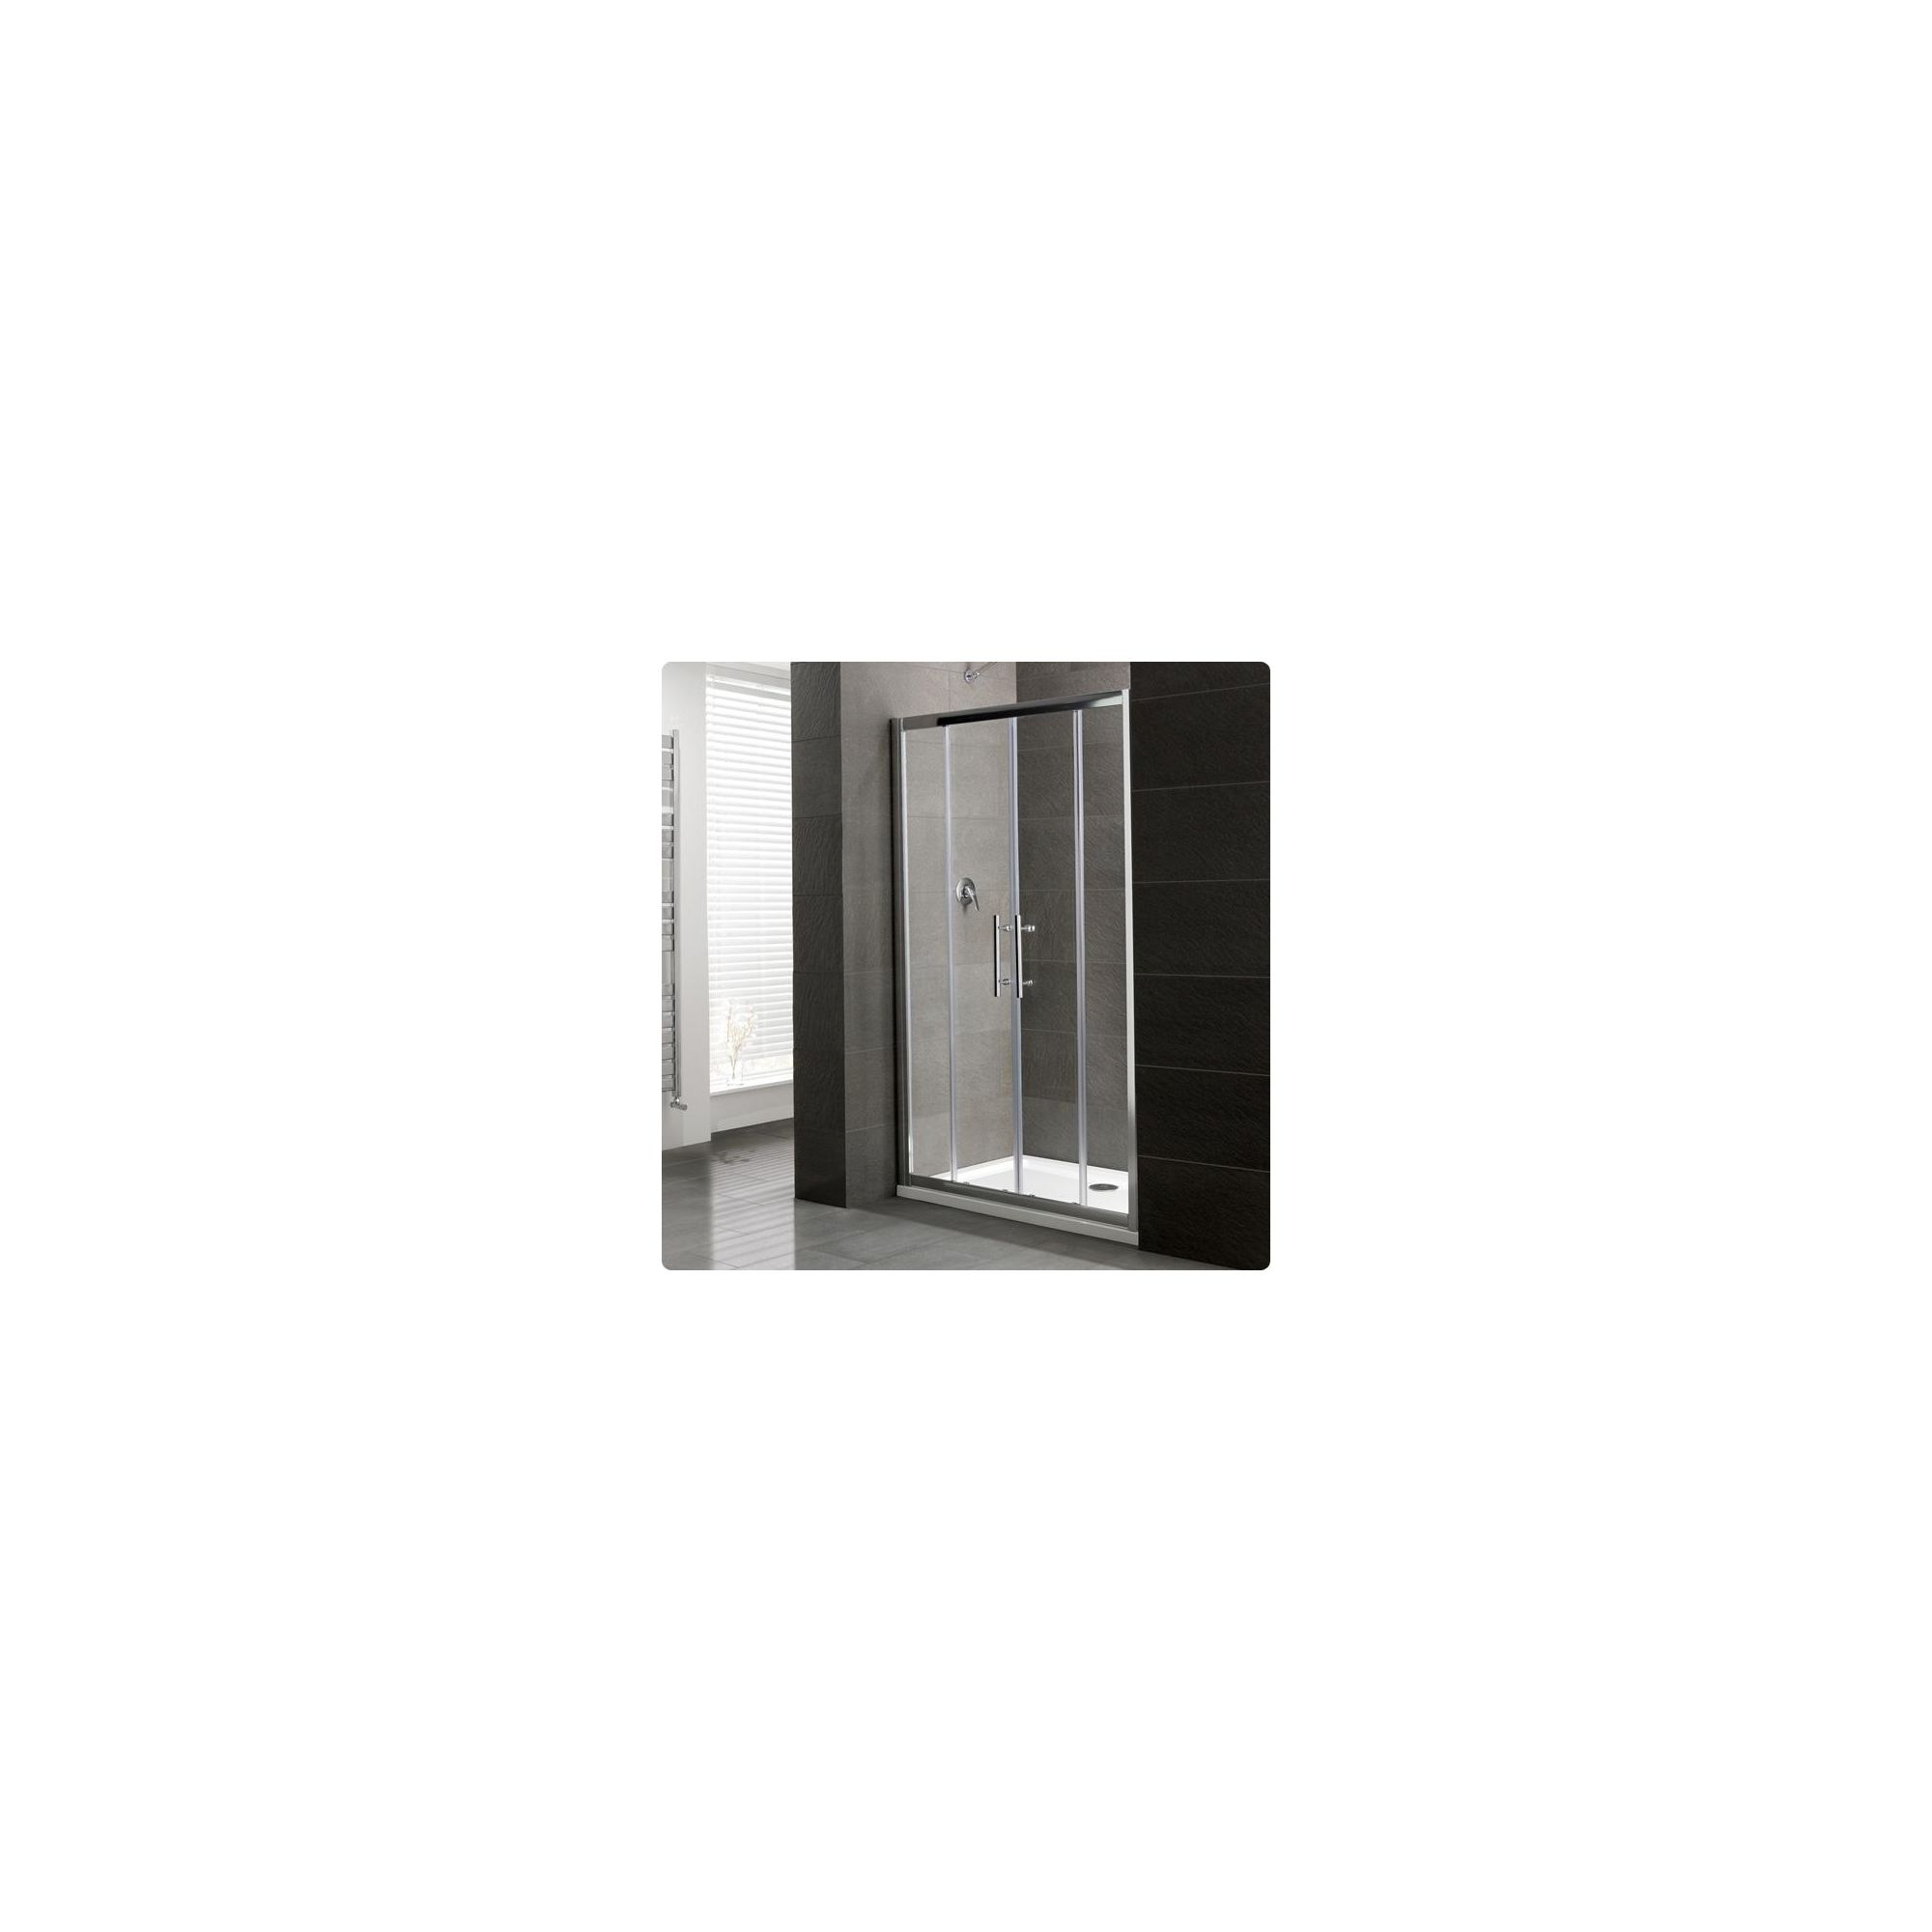 Duchy Select Silver Double Sliding Door Shower Enclosure, 1200mm x 700mm, Standard Tray, 6mm Glass at Tesco Direct